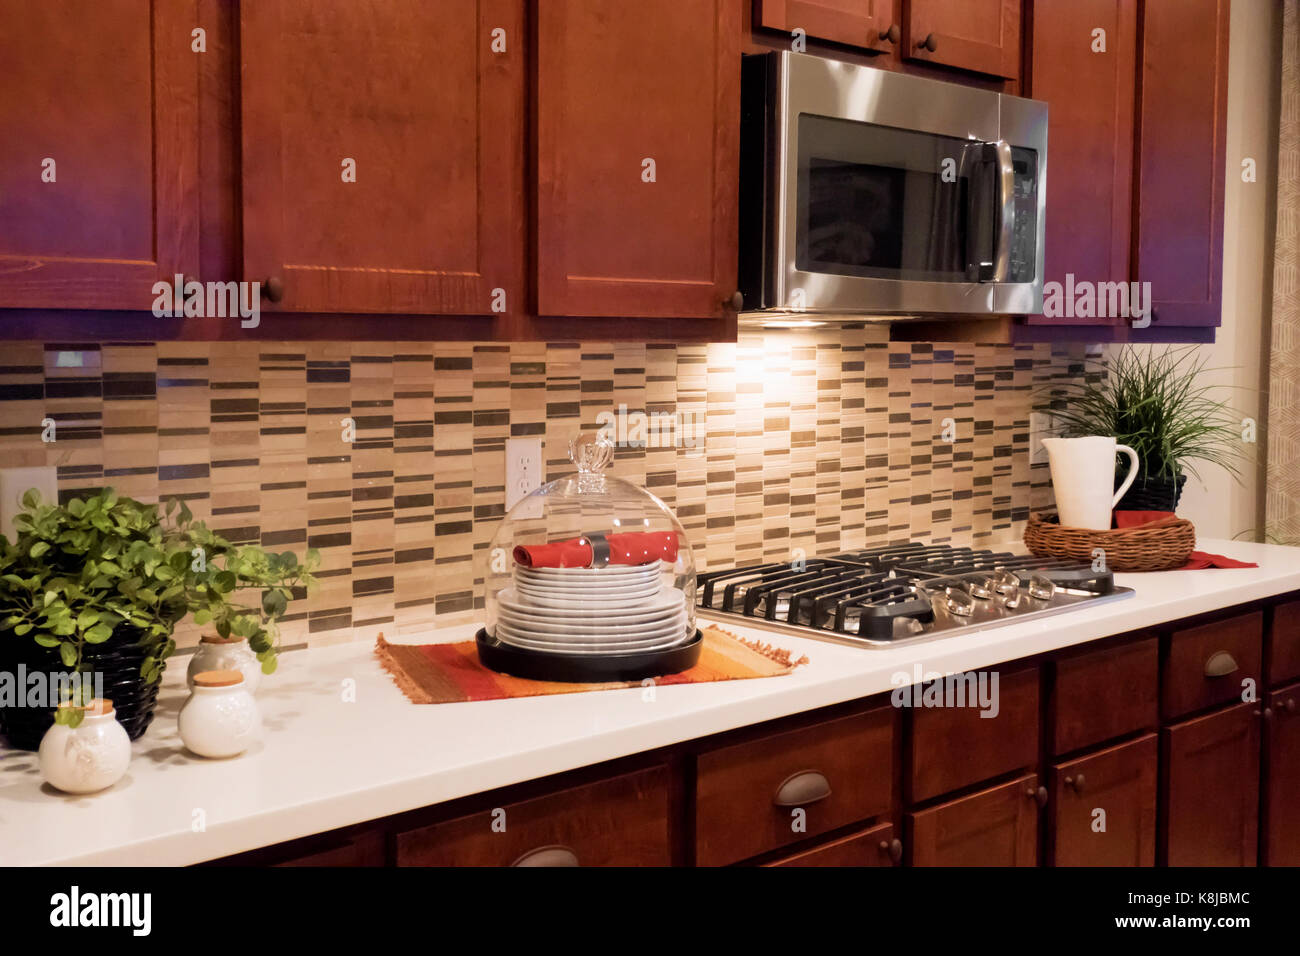 - A Kitchen Countertop With A Stove Top, Microwave With A Beautiful